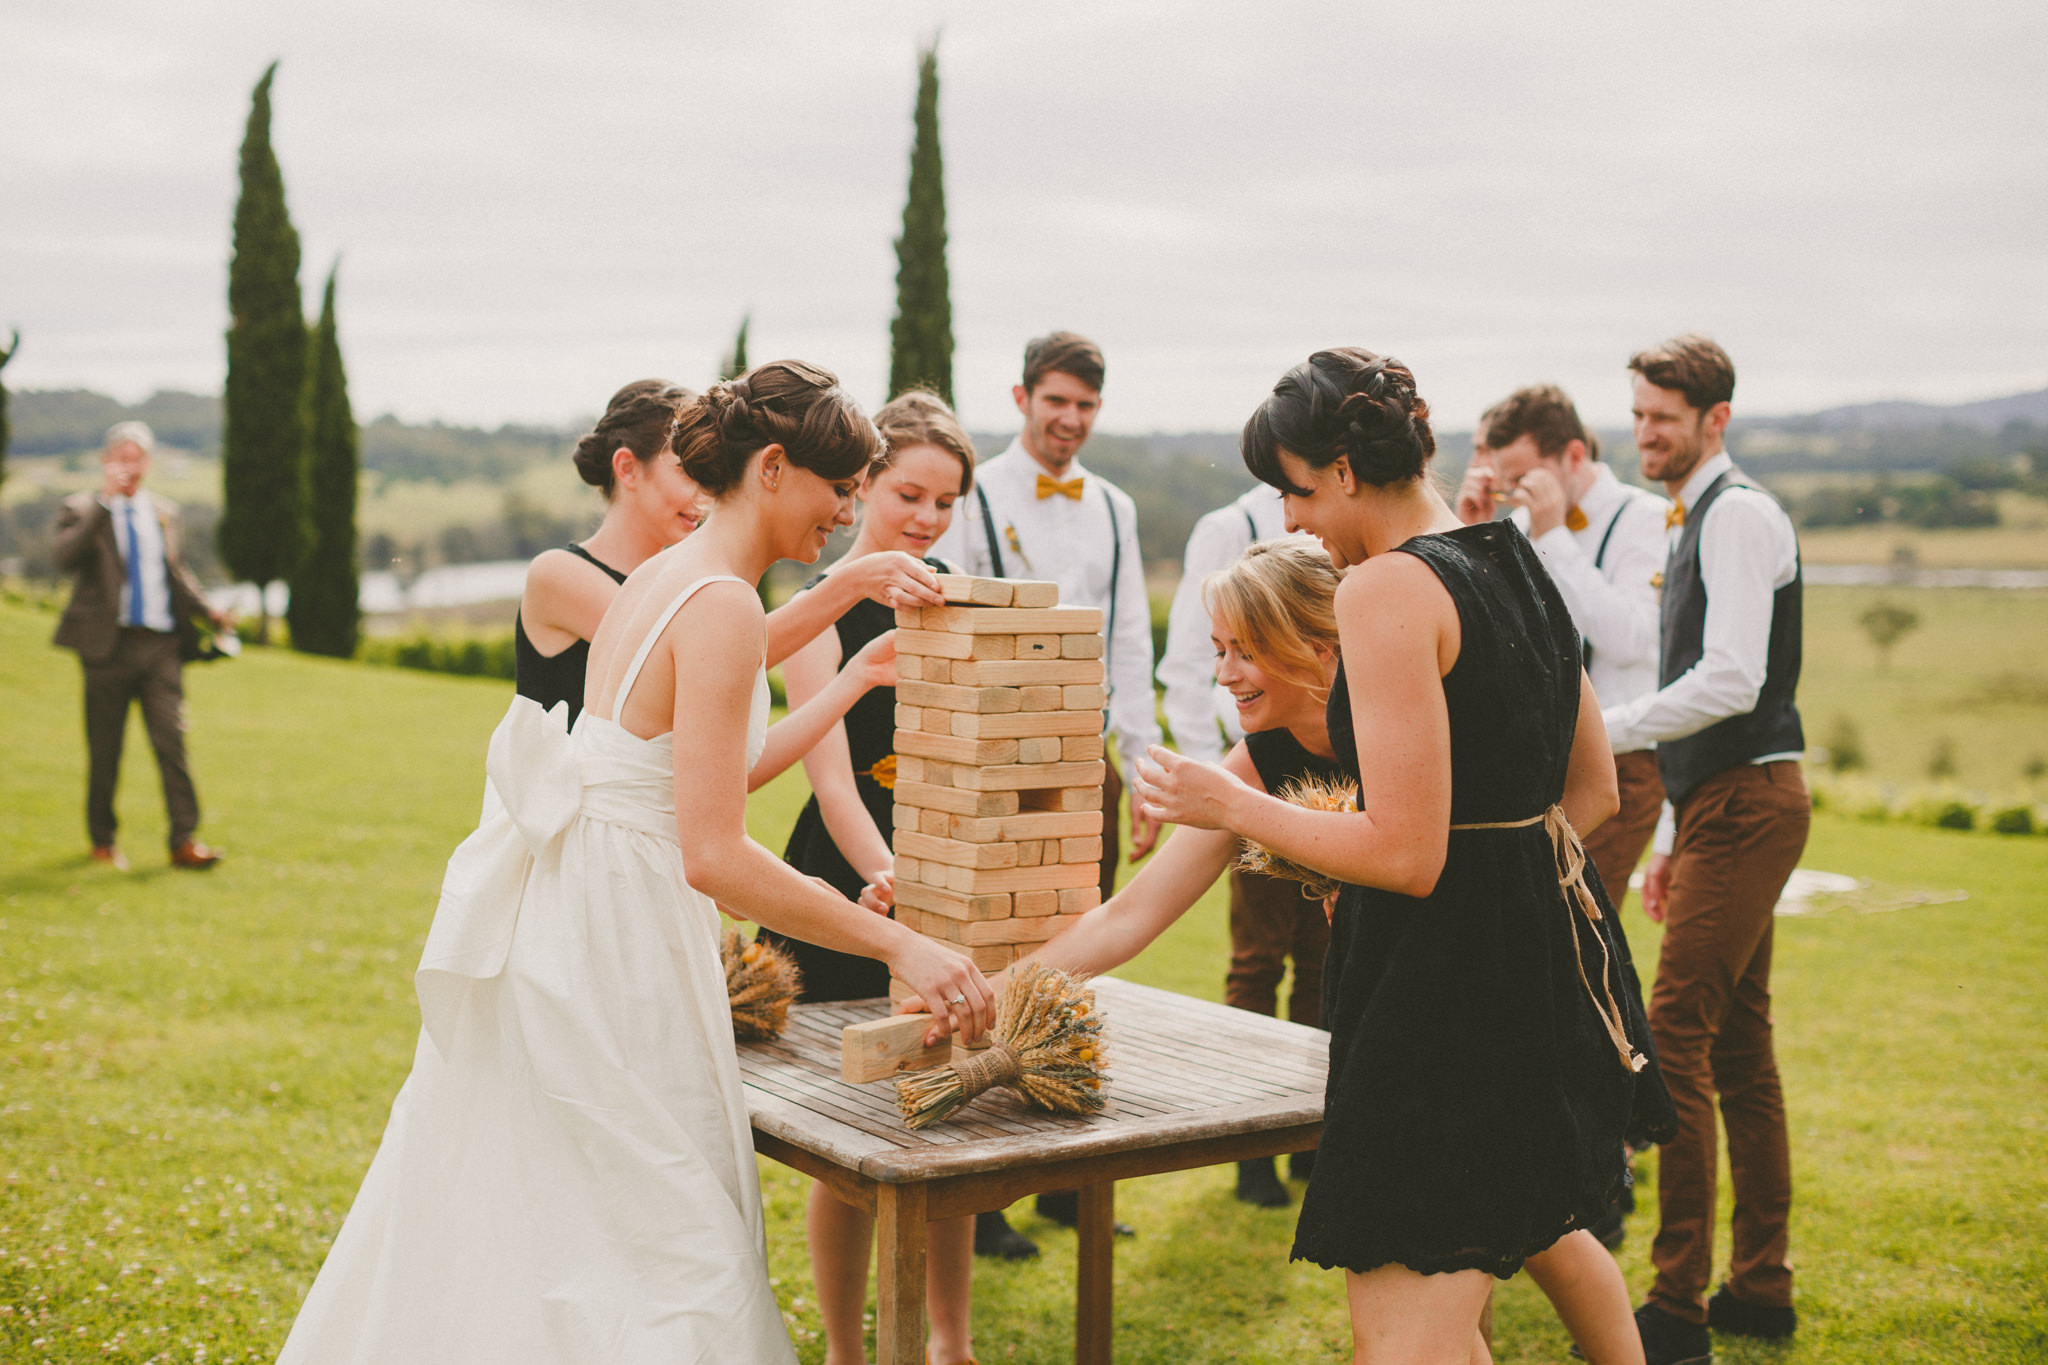 Giant Jenga is also a fun way to entertain your guests at the wedding reception